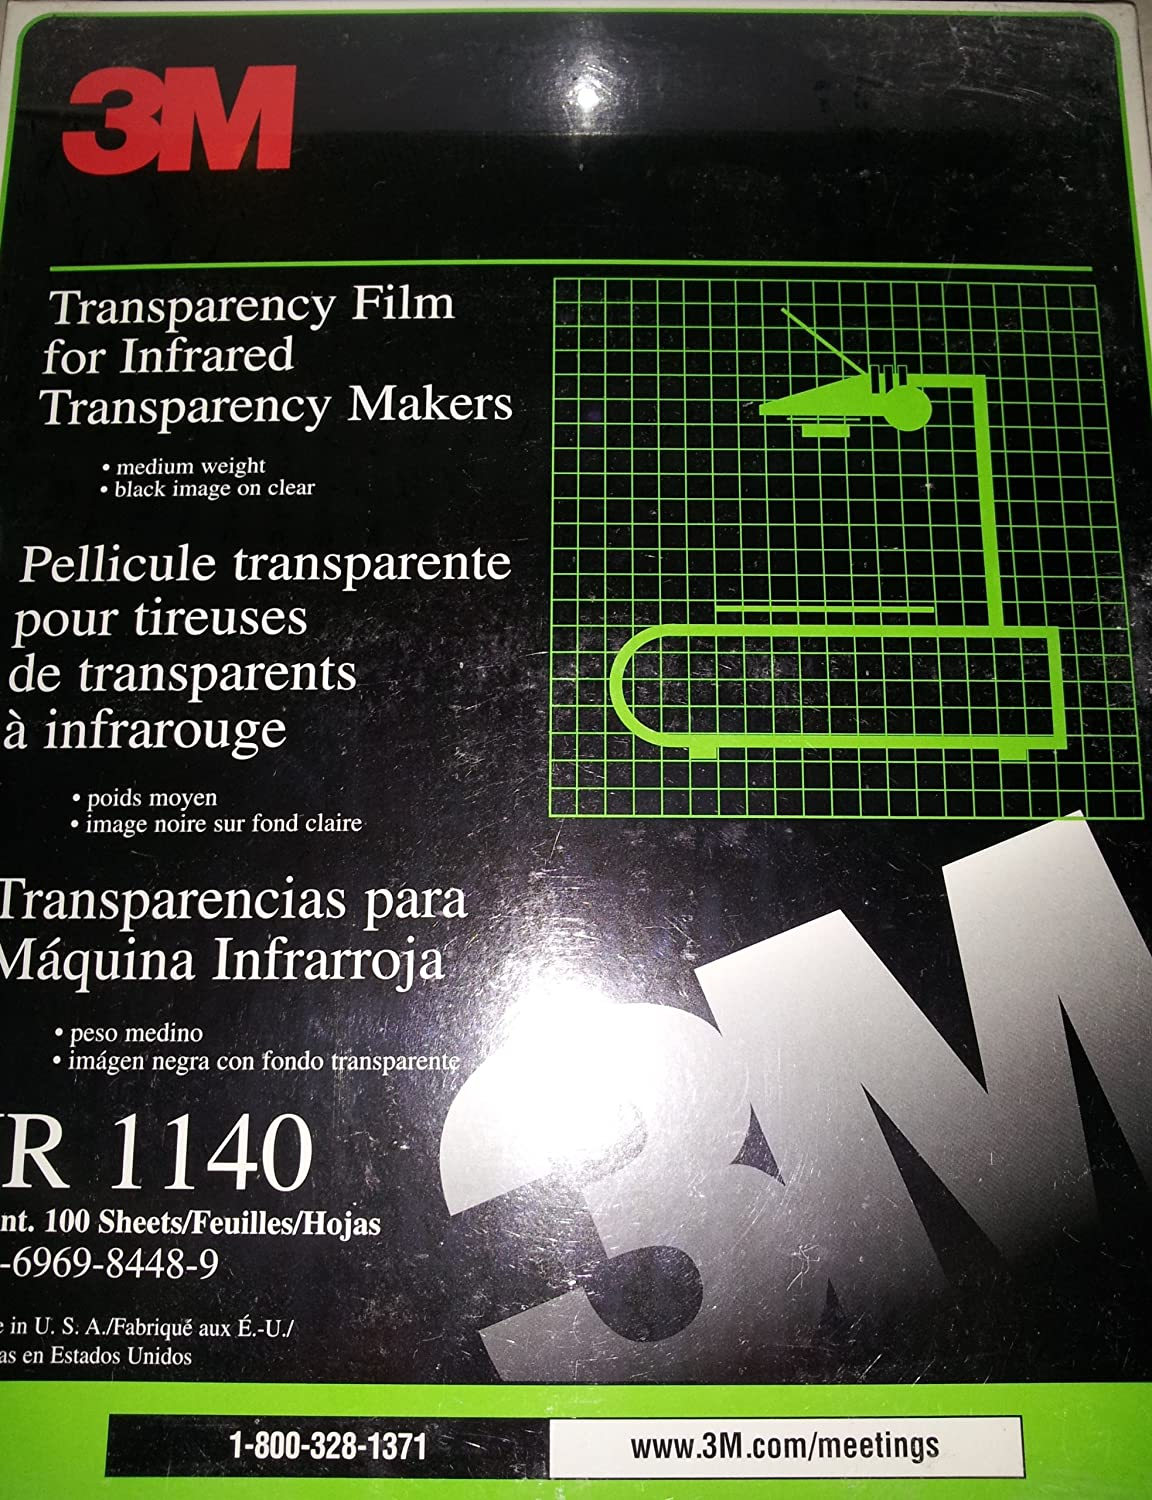 Amazon.com: 3M Transparency Film For Infrared Transparency Makers: Office Products